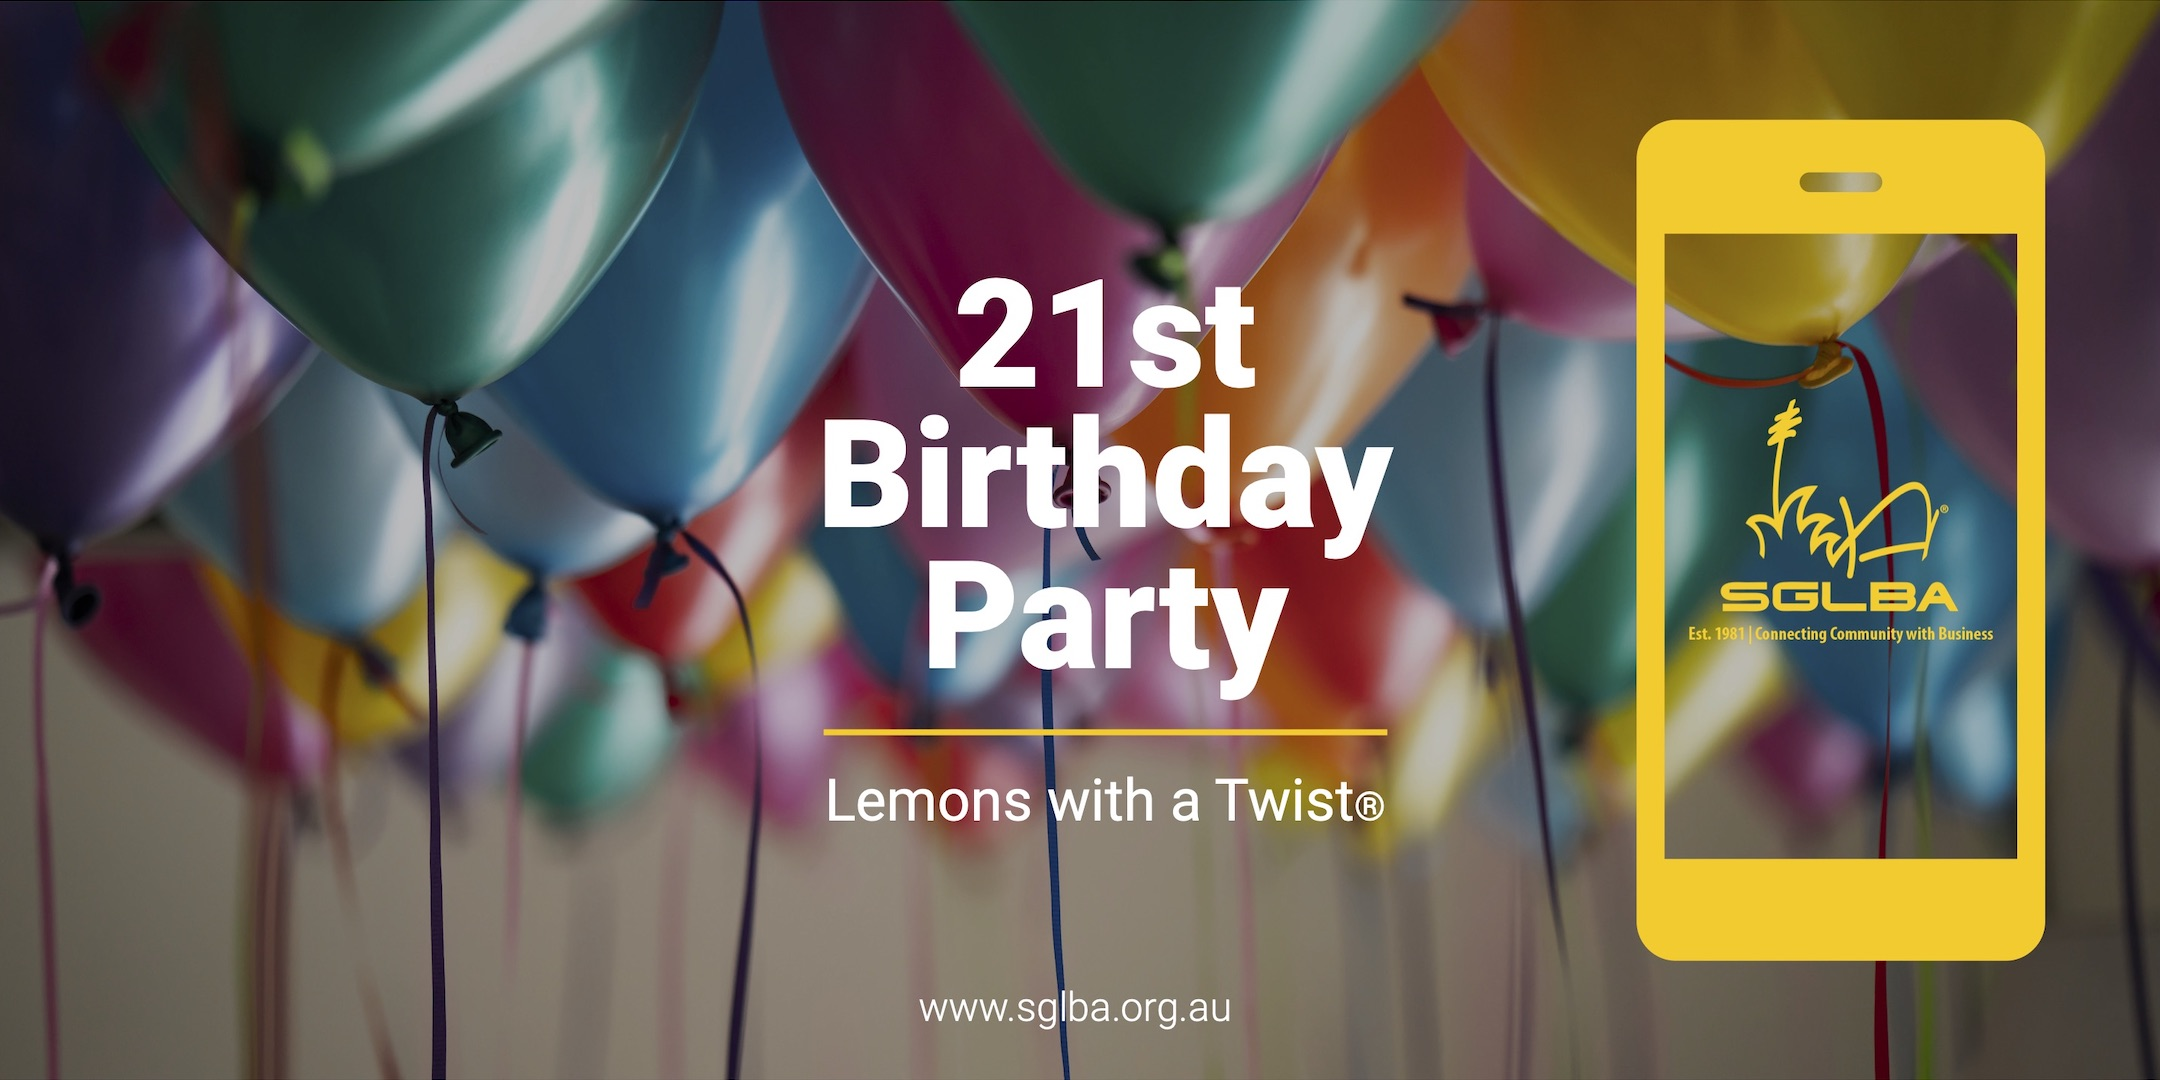 Lemons with a Twist 21st Birthday